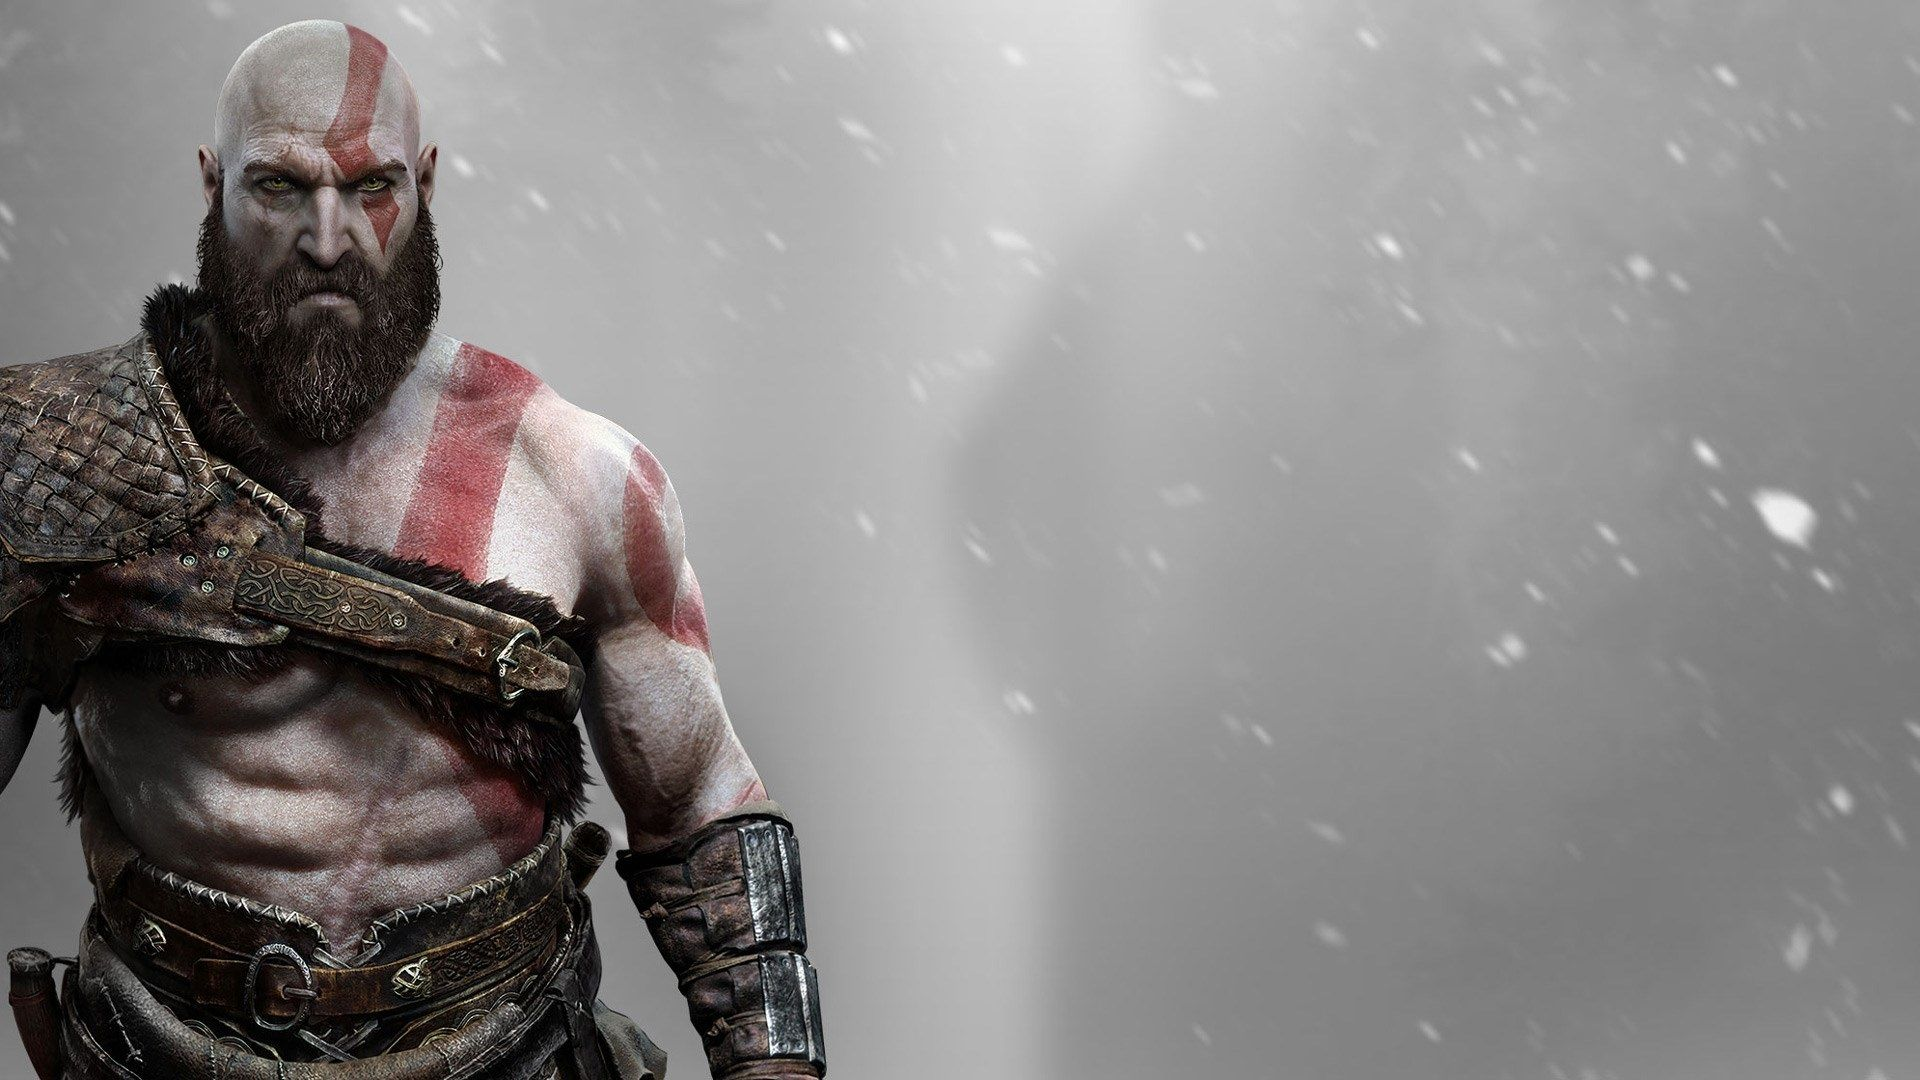 1920x1080 god of war 4 hd wallpaper background | wallpapers and